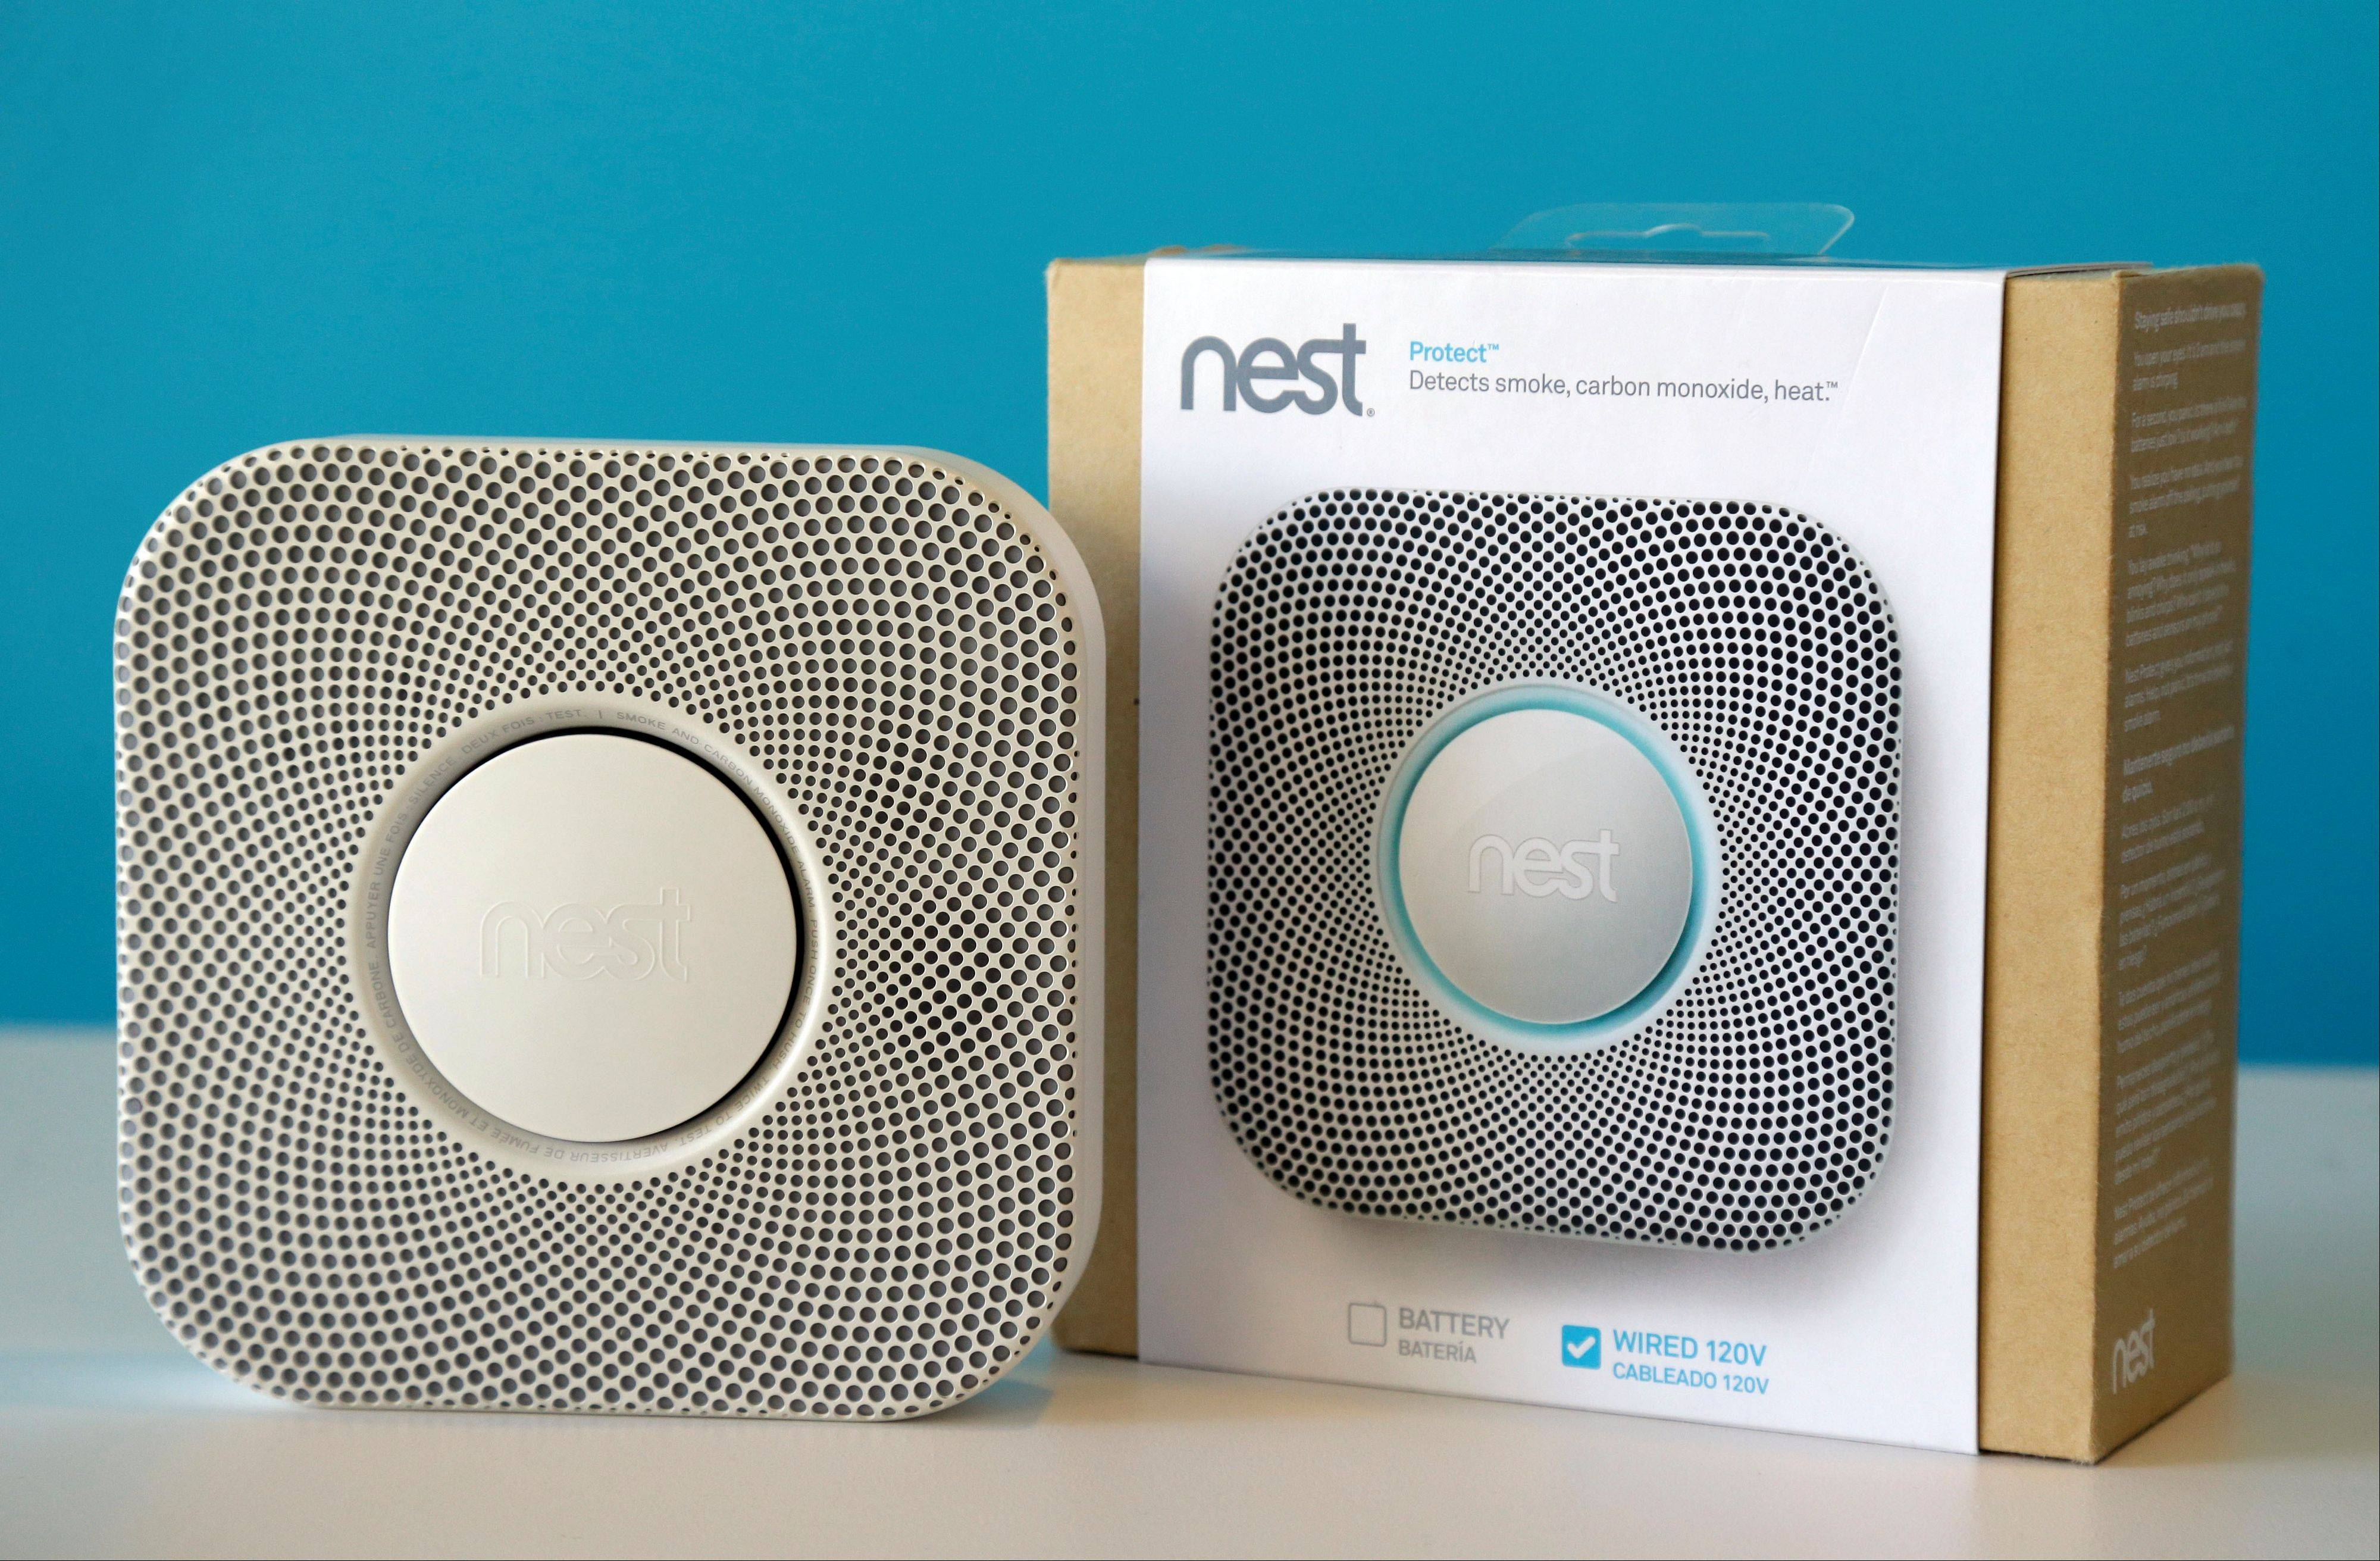 The Nest high-tech smoke and carbon monoxide alarm can be turned off with the wave of an arm.